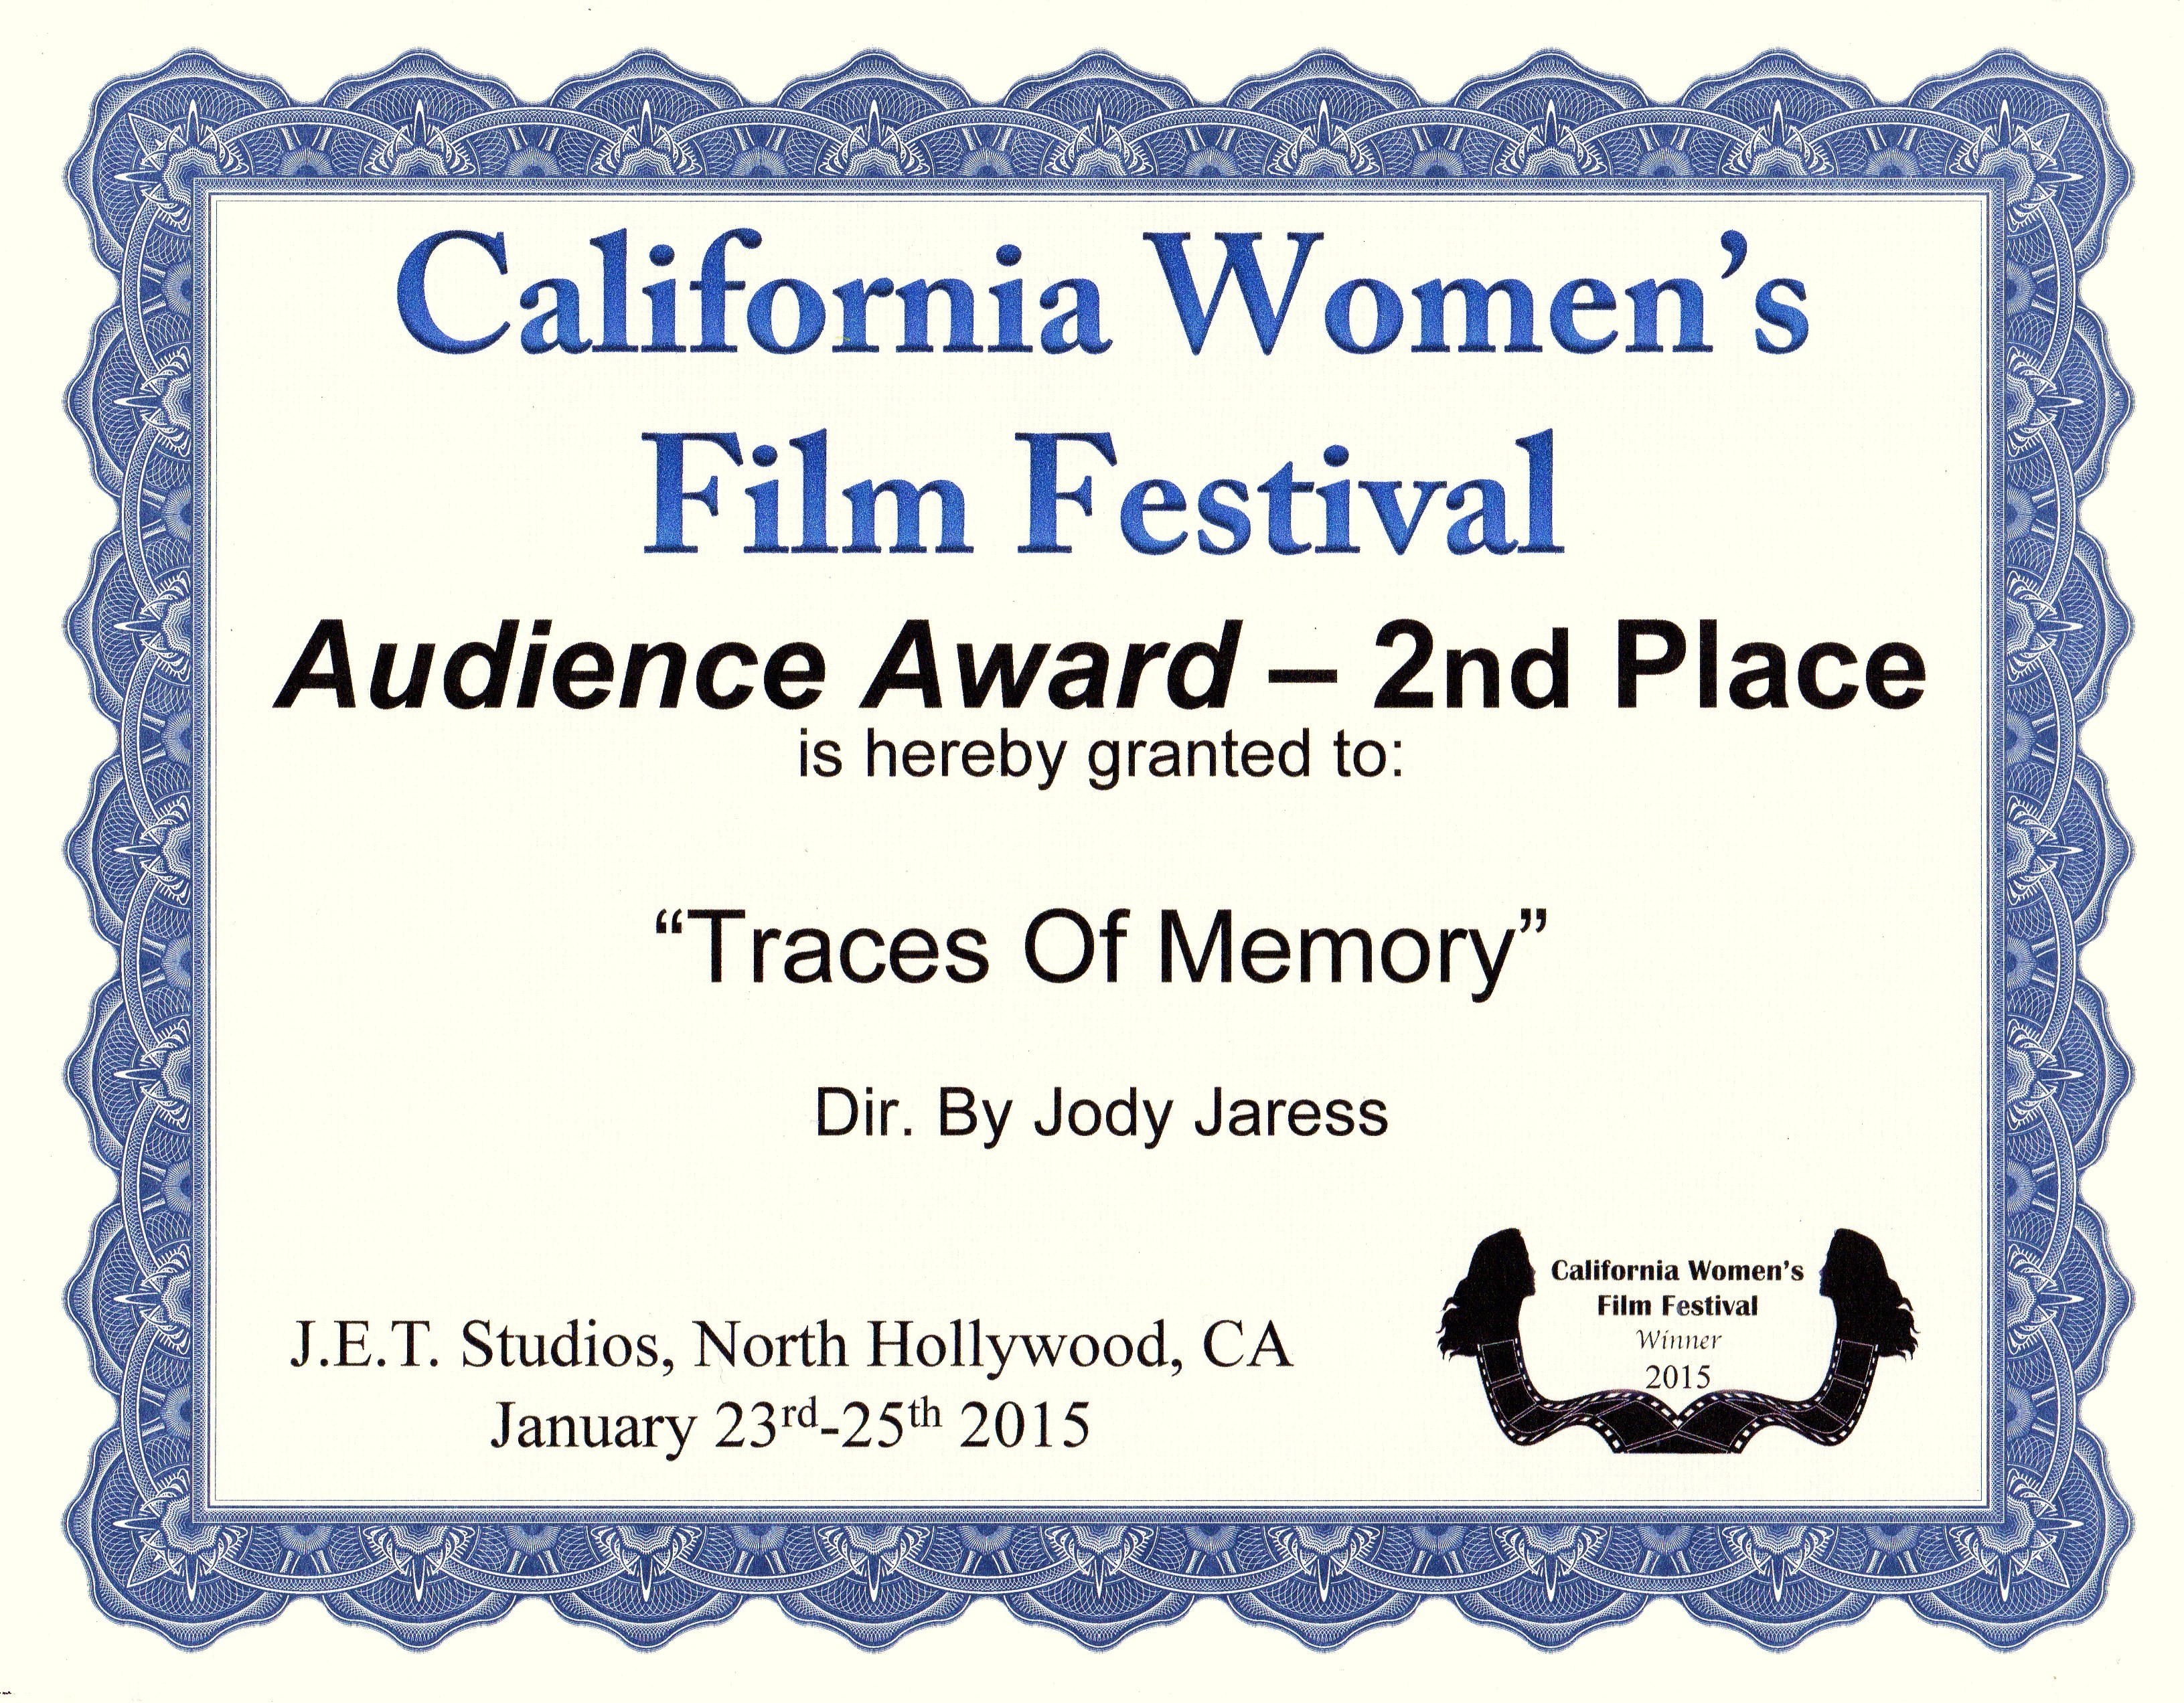 California Women's FilmFestival 2015